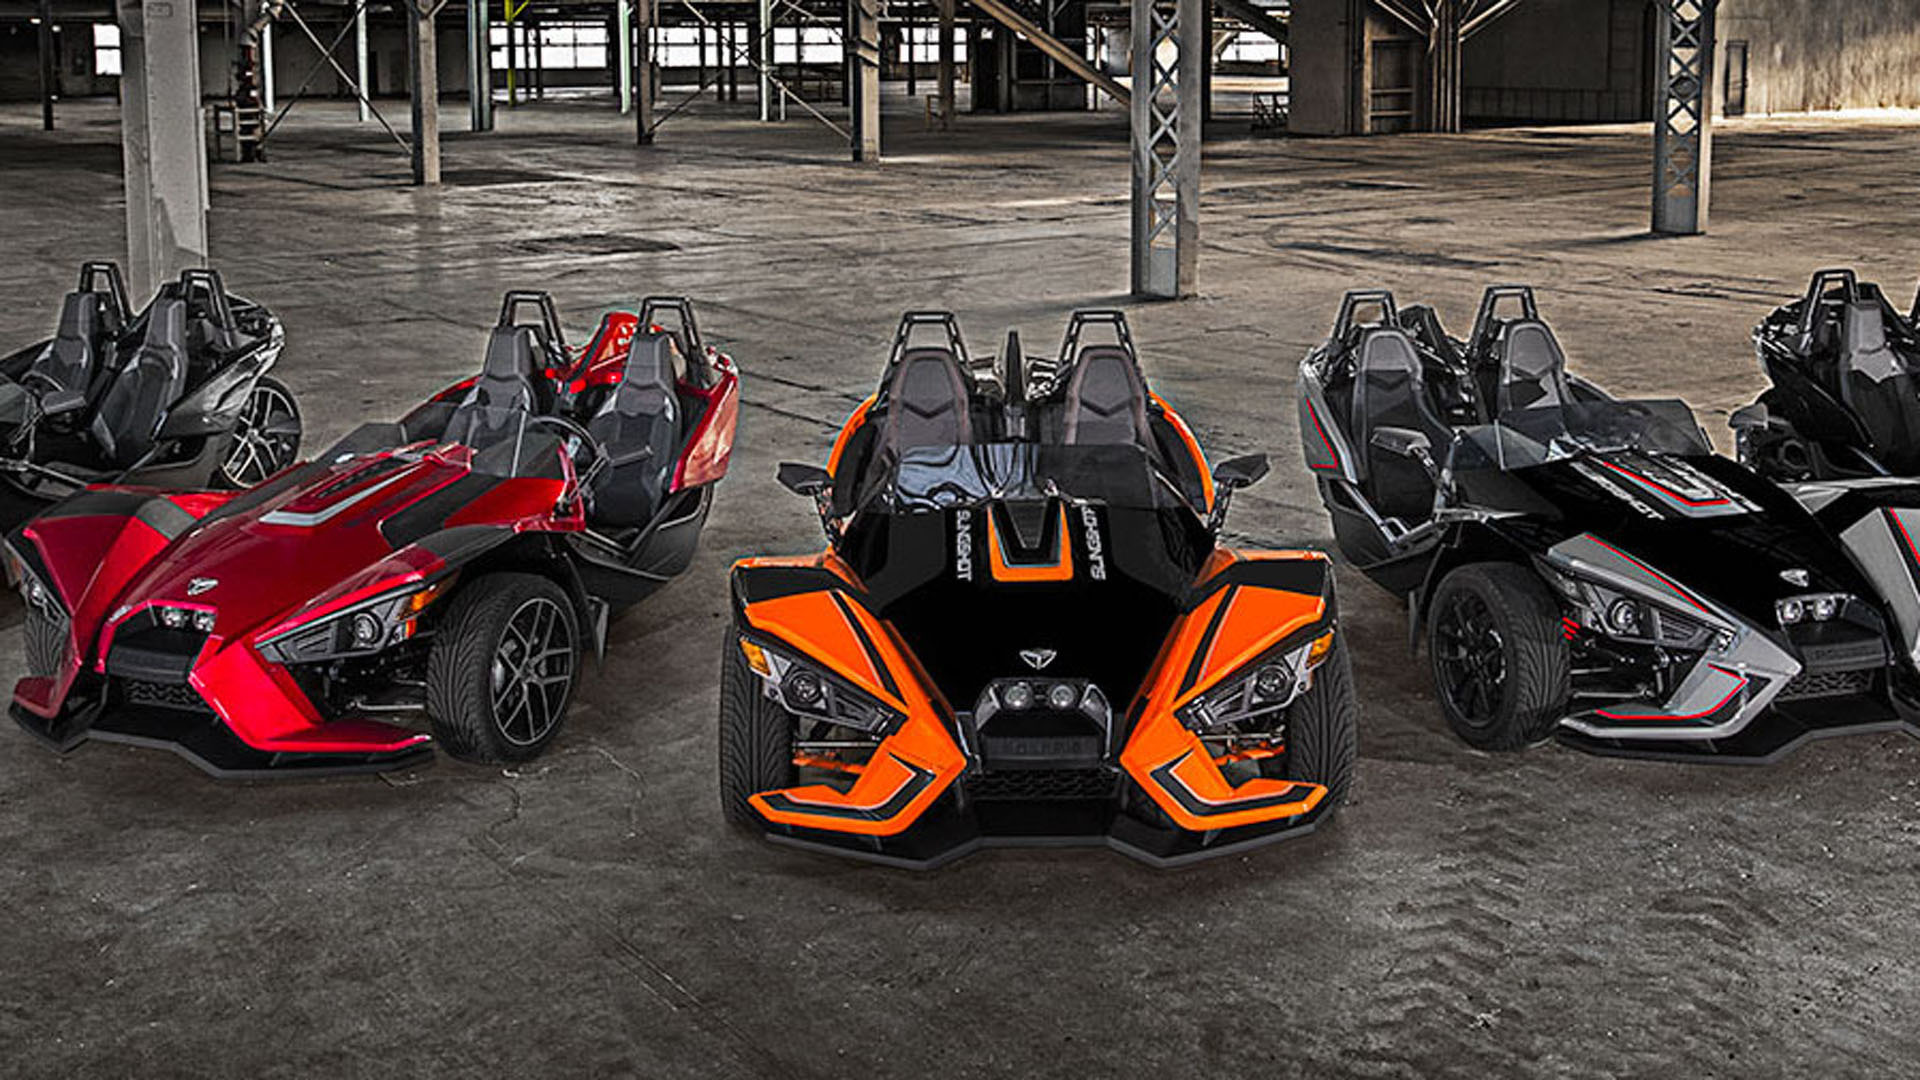 2017 polaris slingshot gets luxury trim and removable roof - Polaris Slingshot Roof